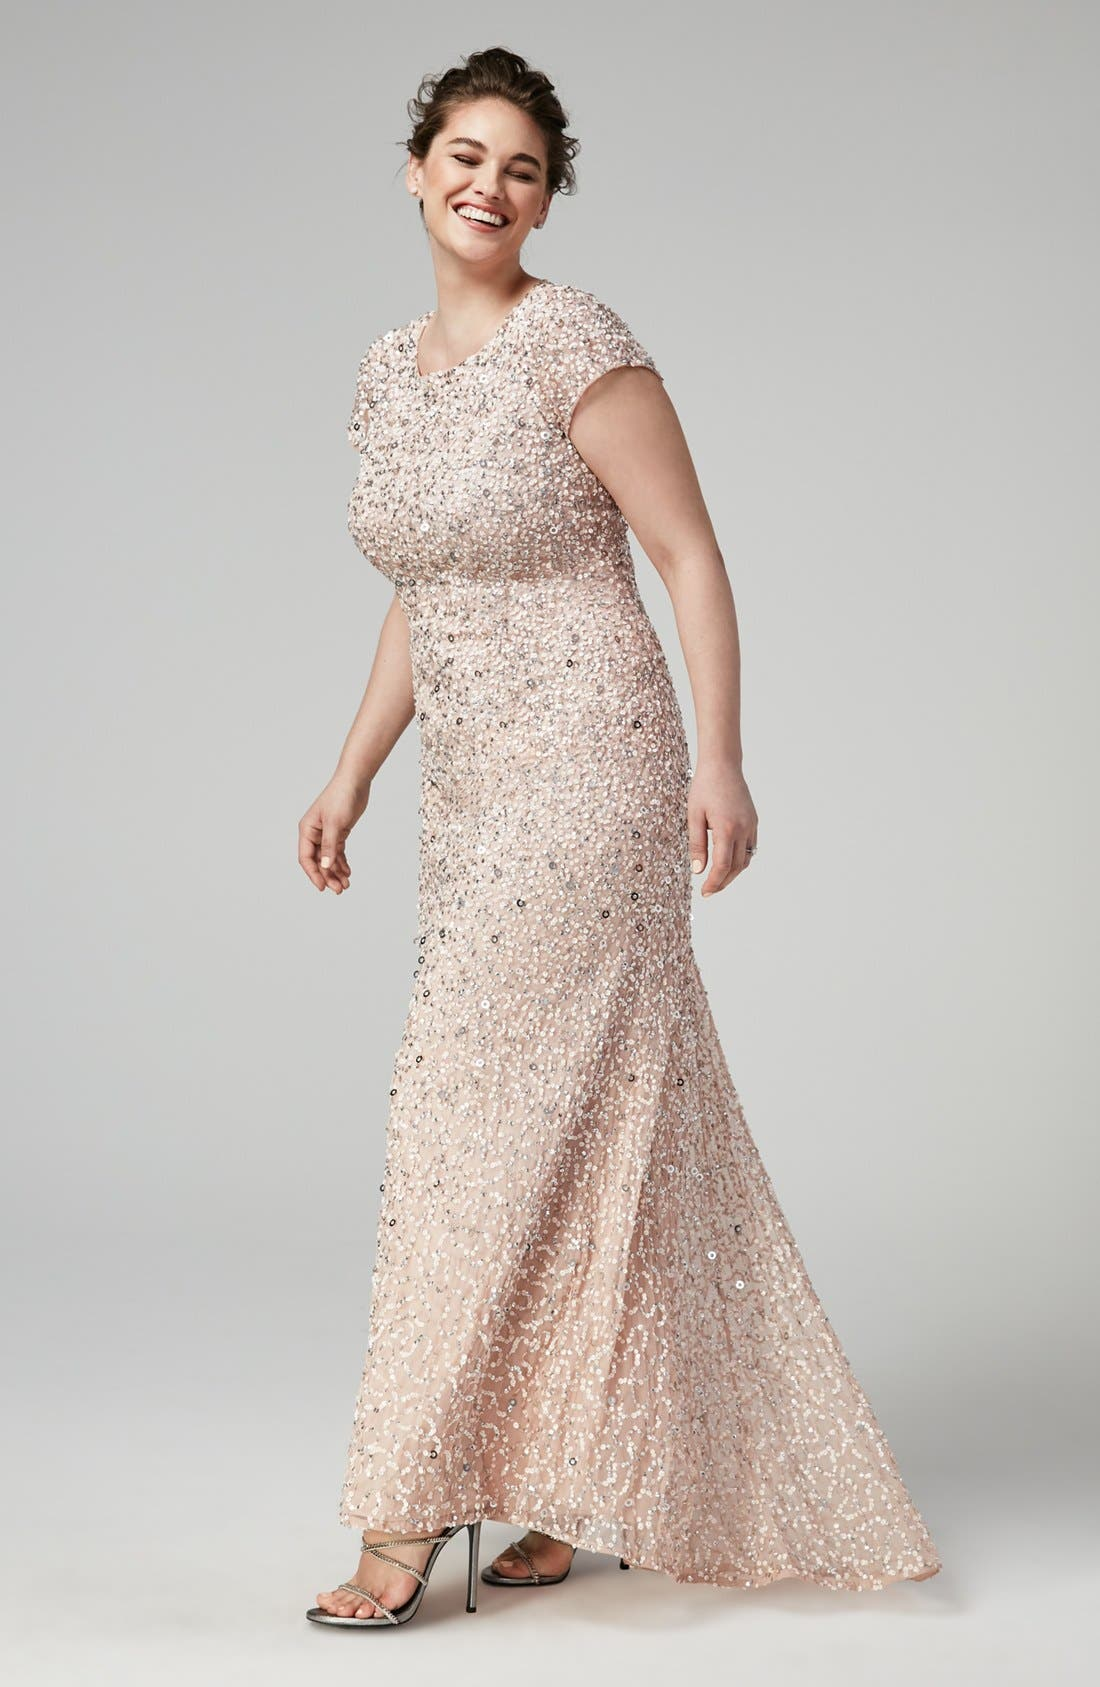 Womens plus size bridesmaid dresses nordstrom ombrellifo Gallery